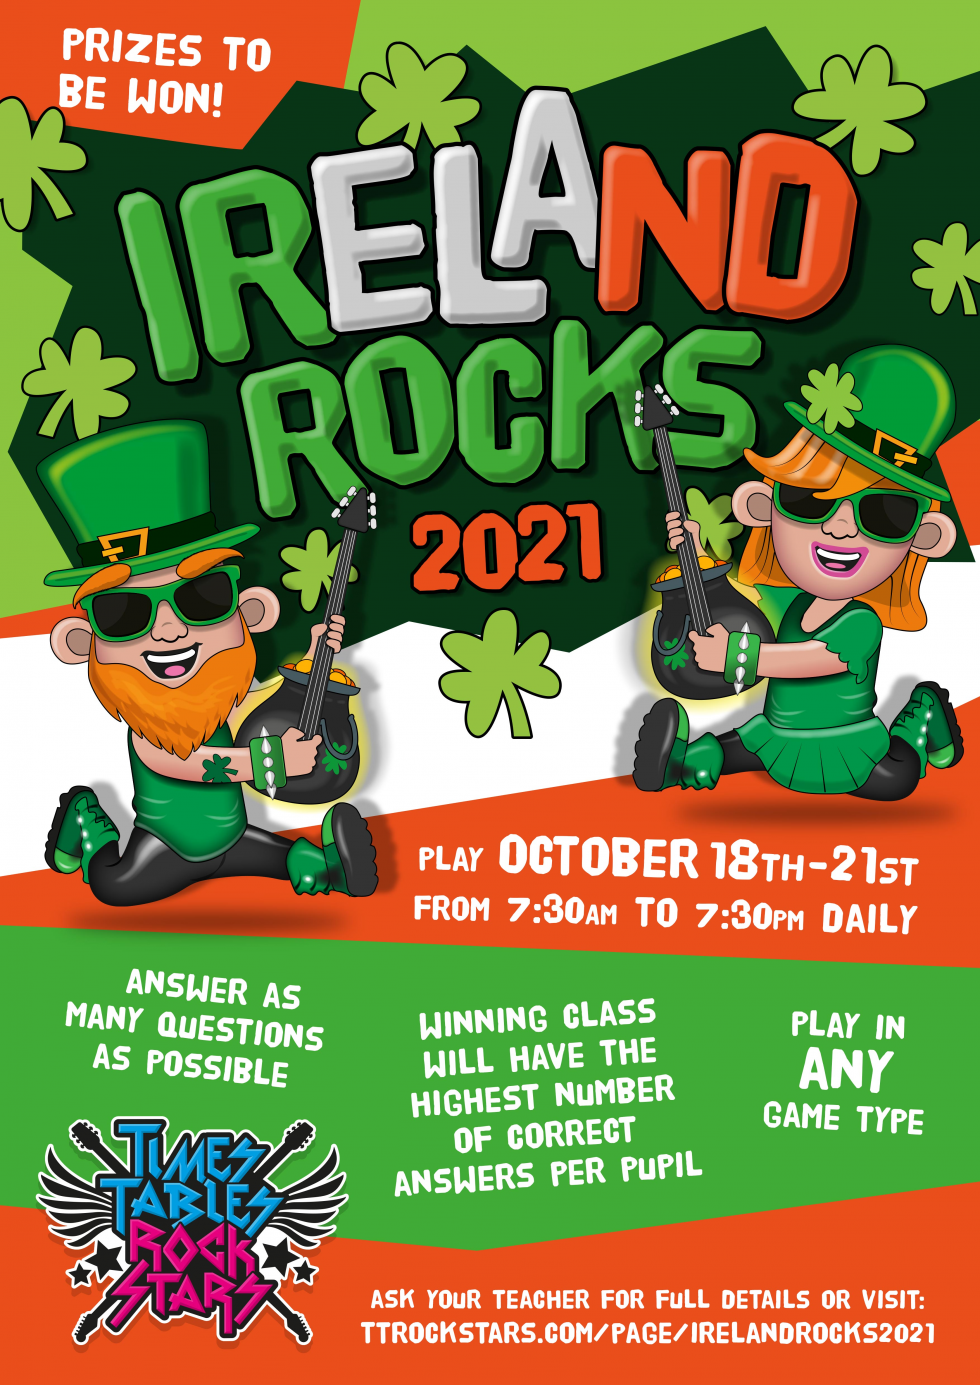 Download your Ireland Rocks 2021 Poster now.